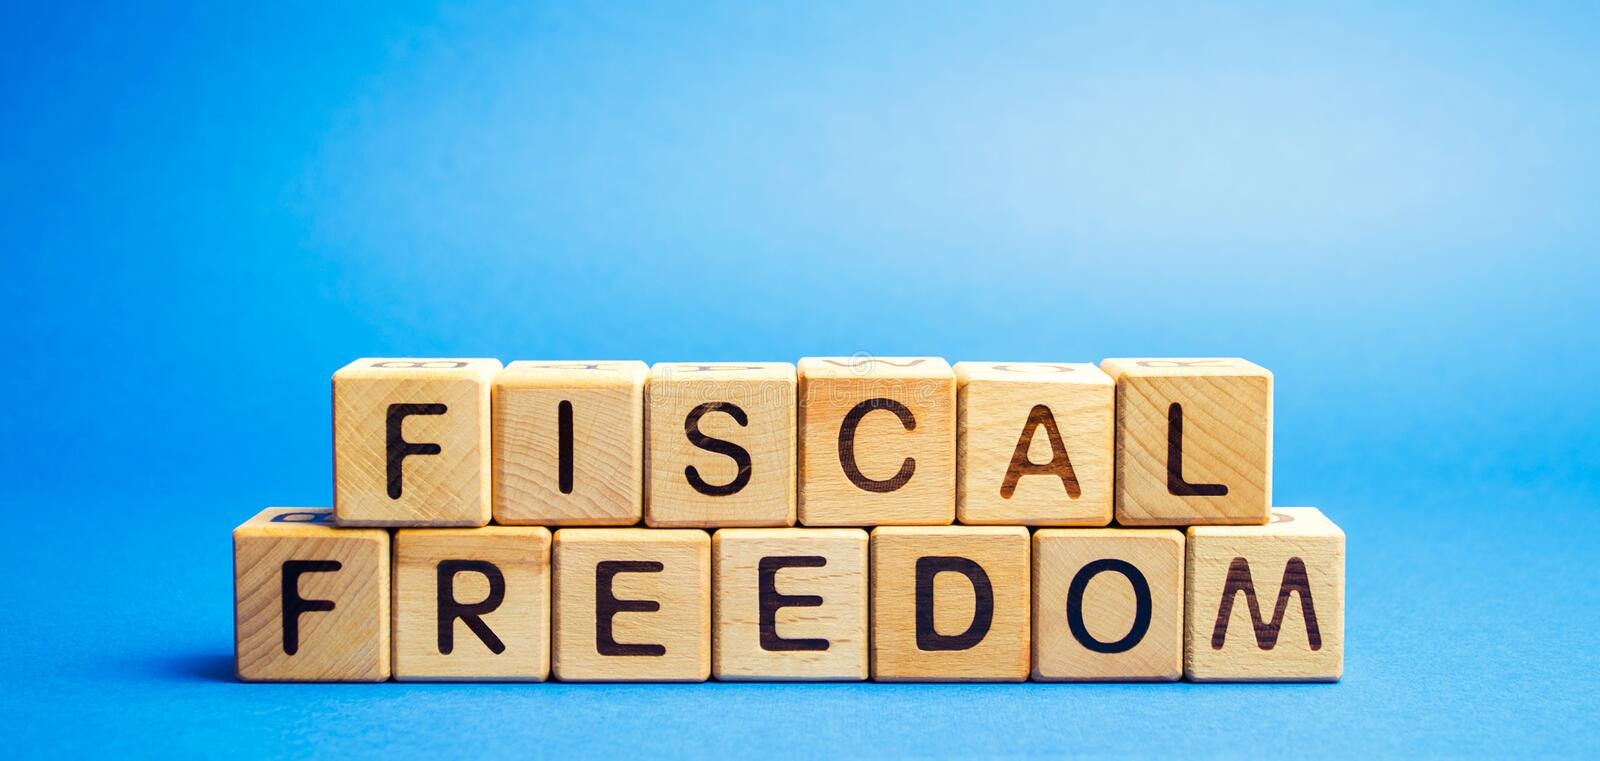 Wooden blocks with the word Fiscal freedom. Tax burden imposed by government. Taxation. Taxes concept. Business and Finance.  royalty free stock photo